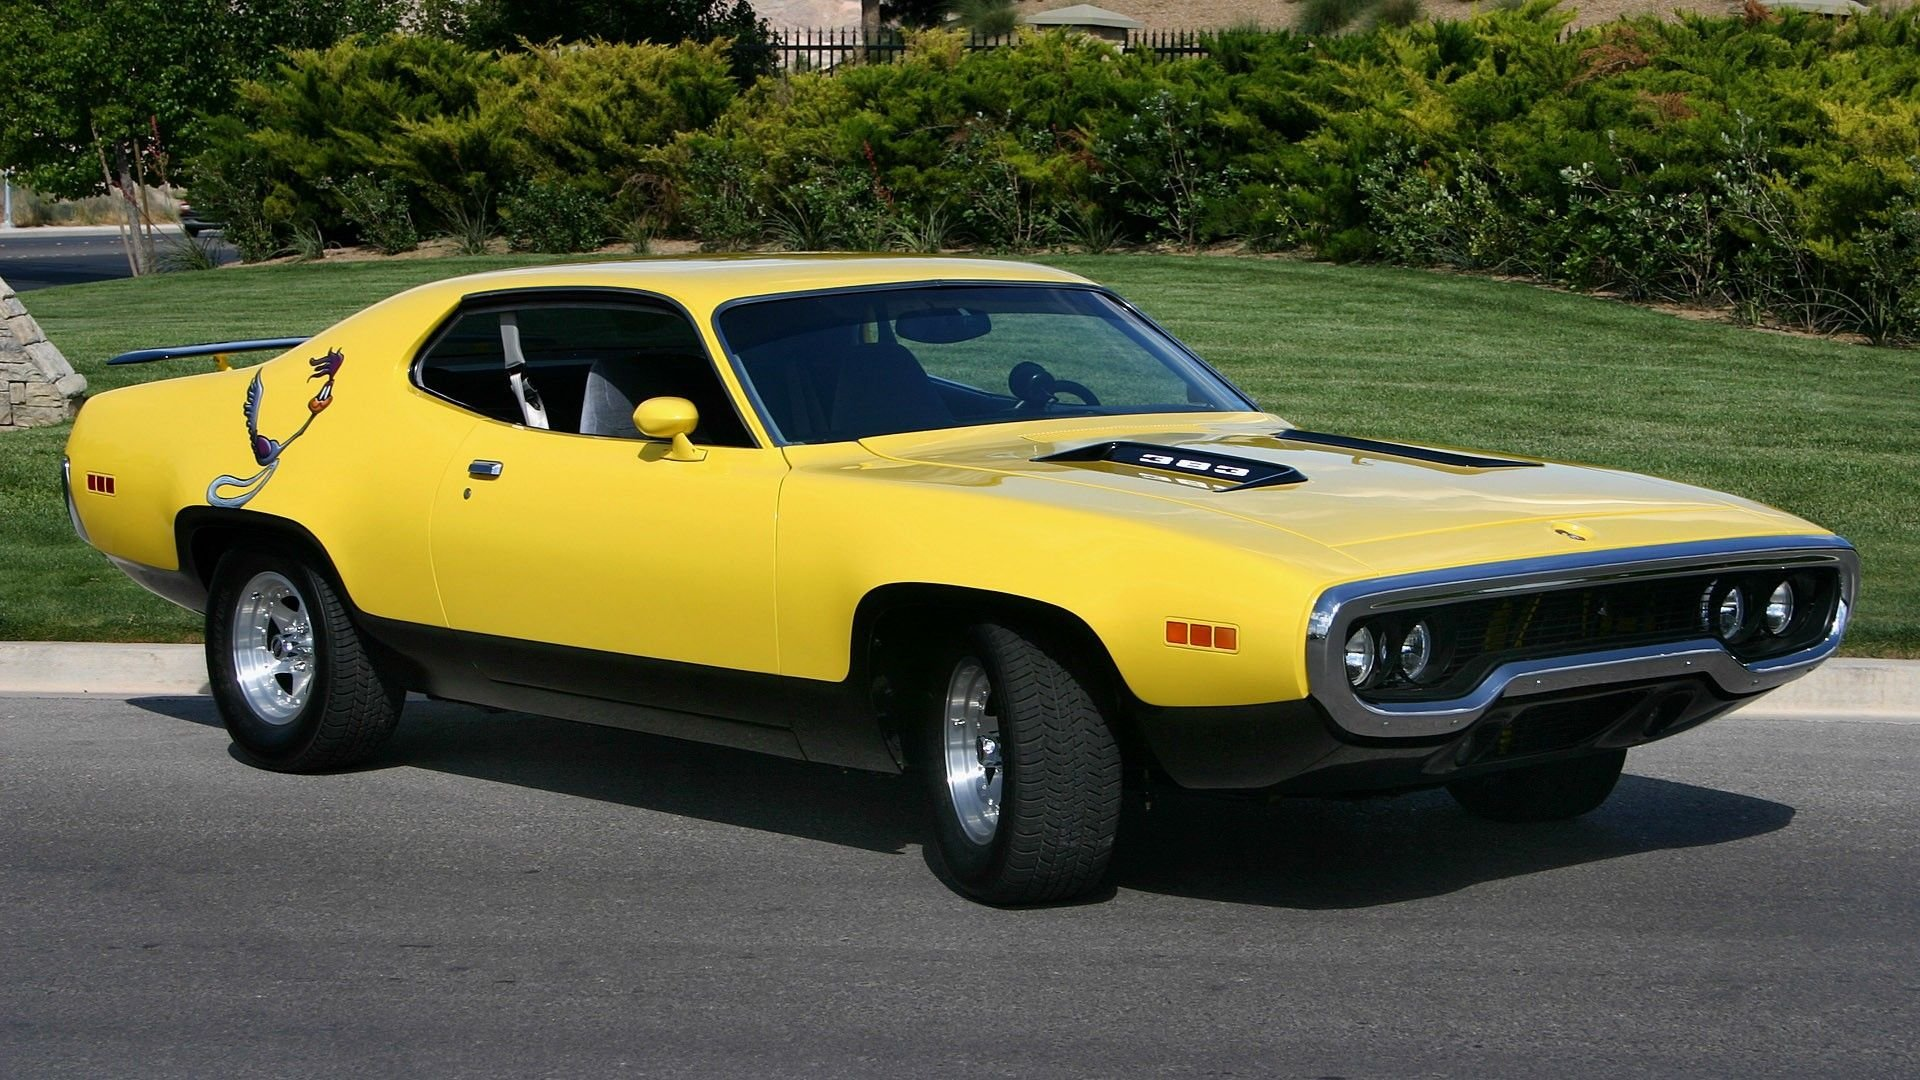 Latest Cars Plymouth 1973 Roadrunner Automotive Muscle Car Free Download